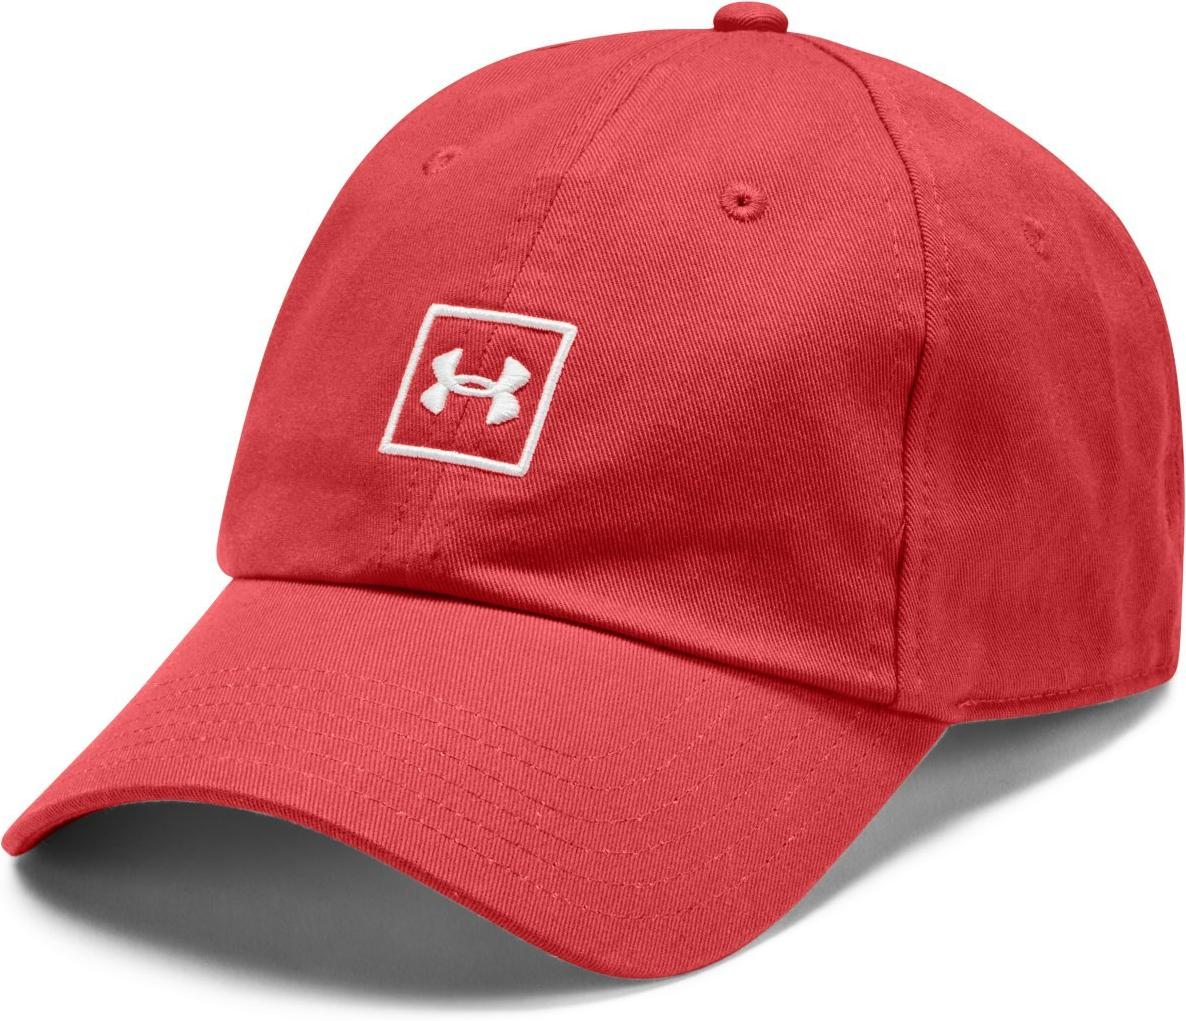 Šilterica Under Armour washed cotton cap